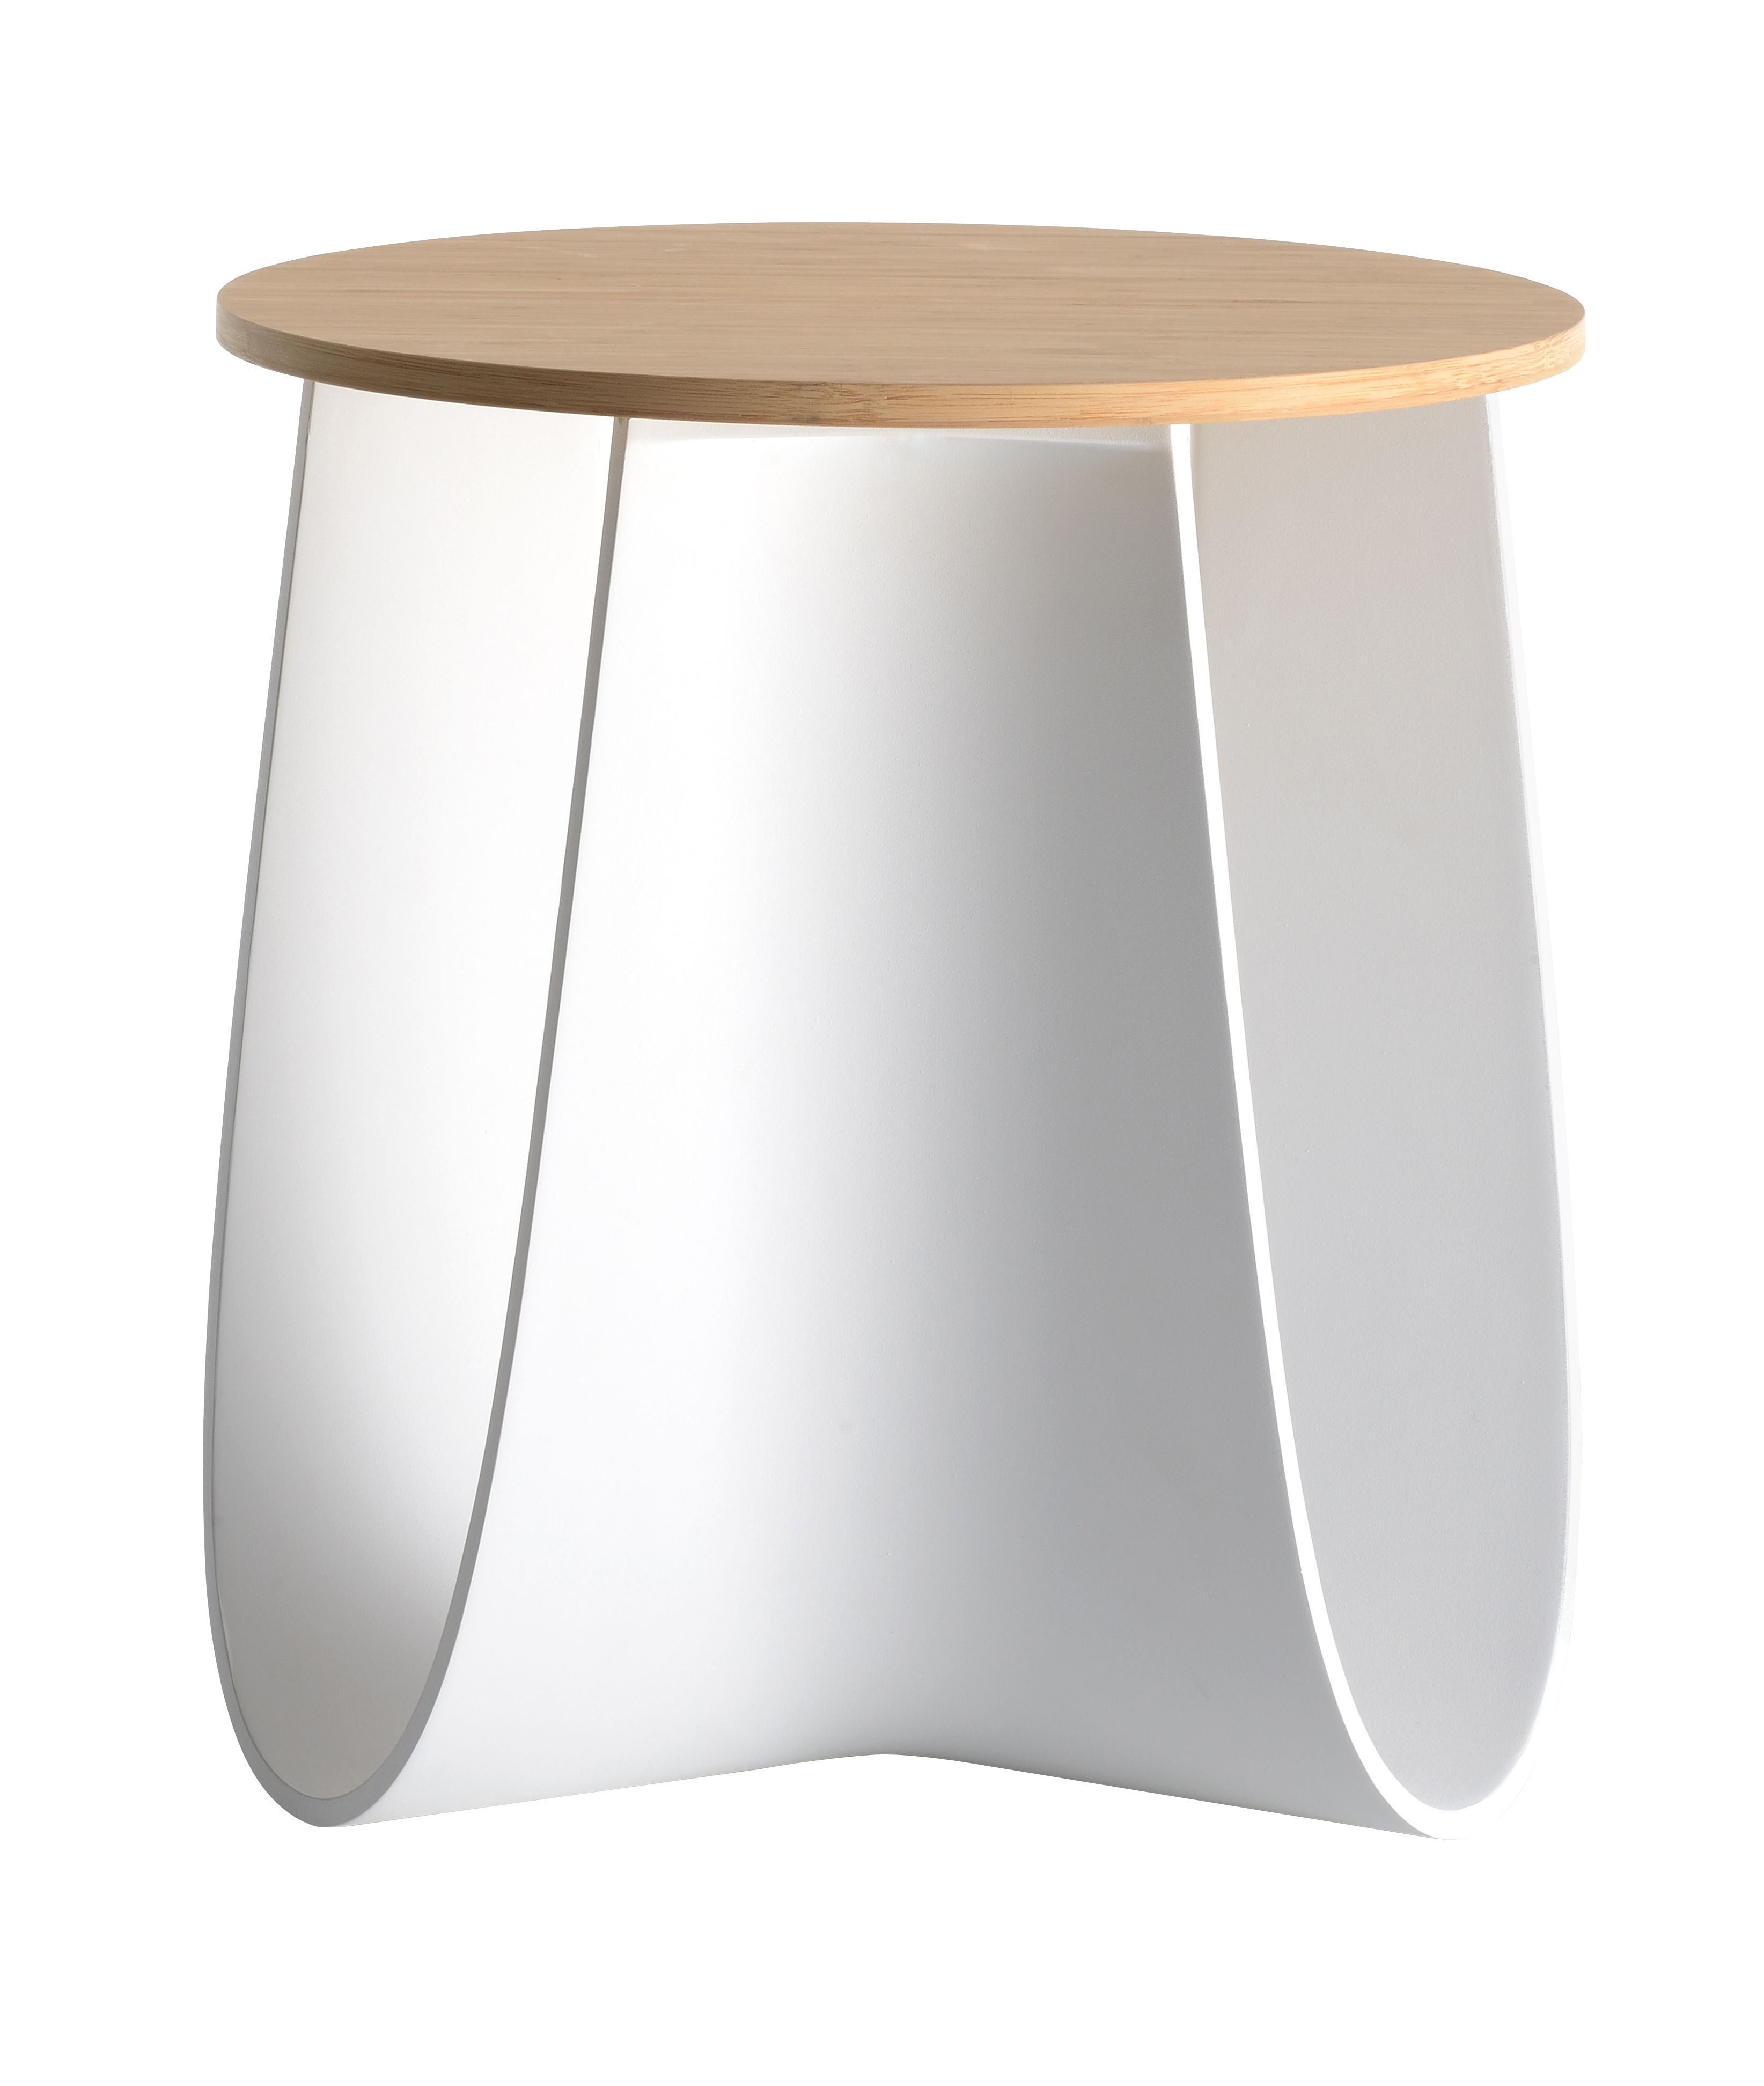 Furniture - Coffee Tables - Sag Stool - Table H 43 cm / Bamboo seat by MDF Italia - White / Bamboo - Bamboo plywood, Polyurethane